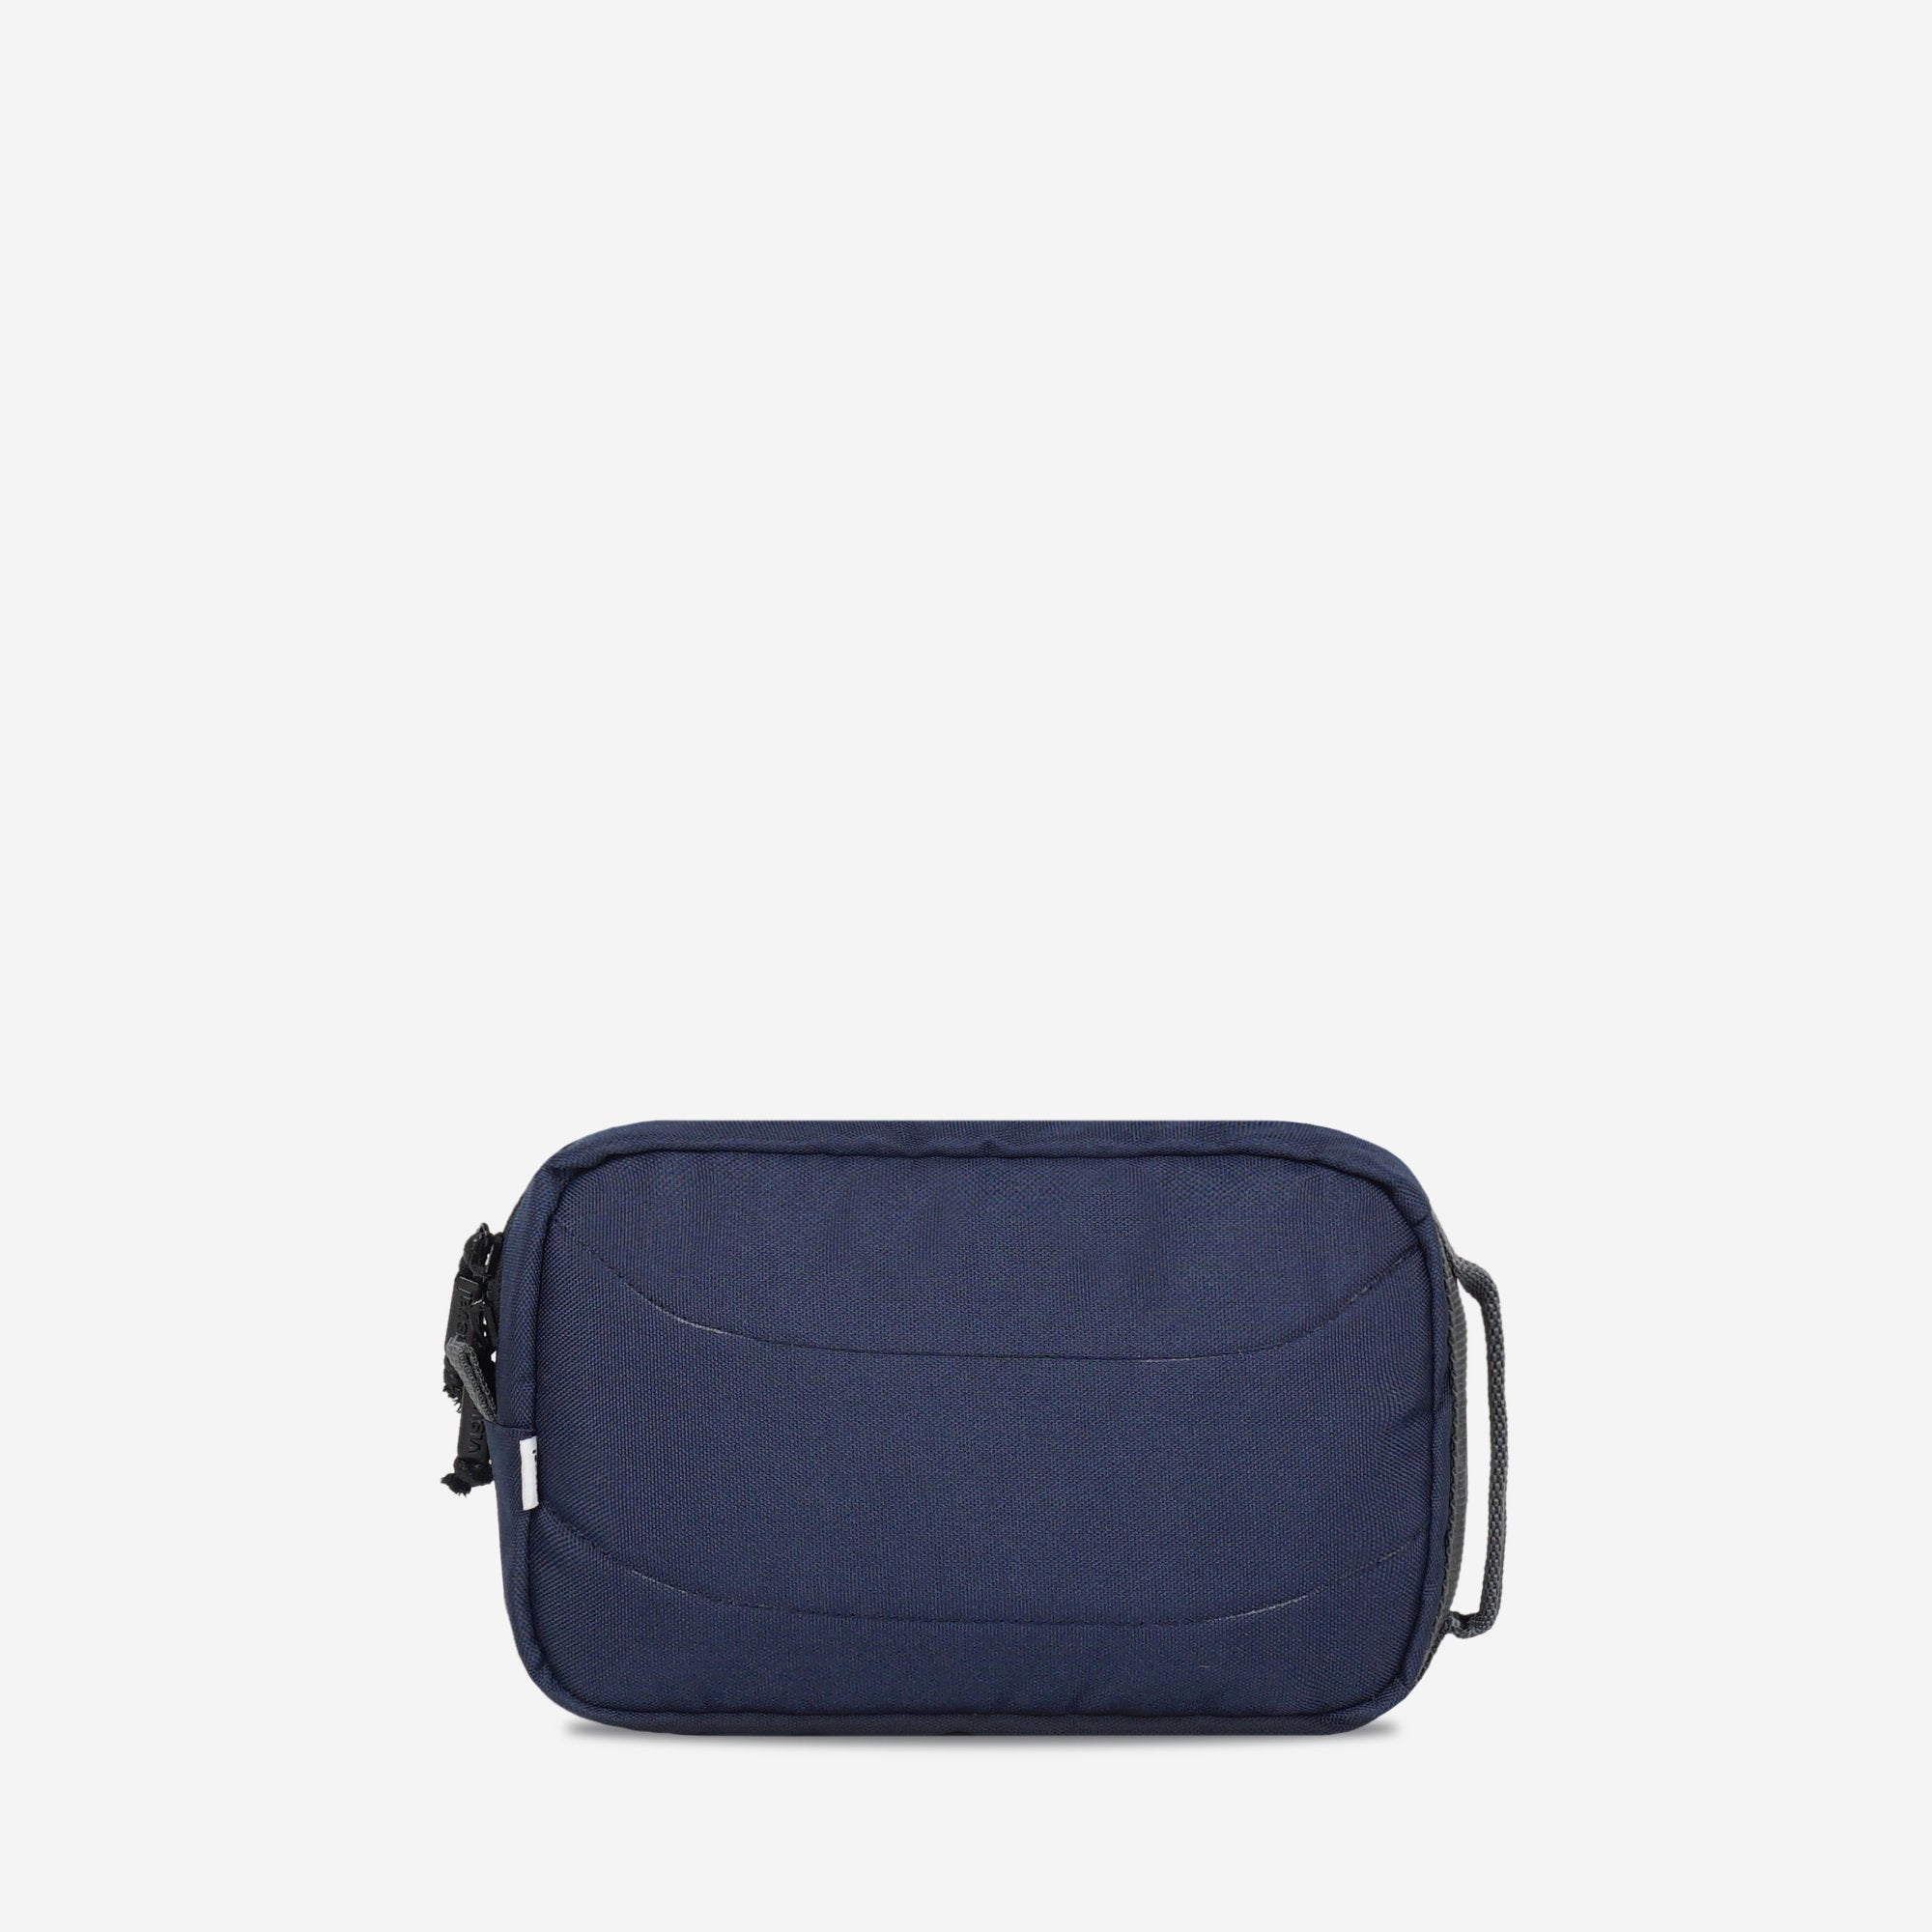 Flashpack 2.0 Dopp Kit Navy